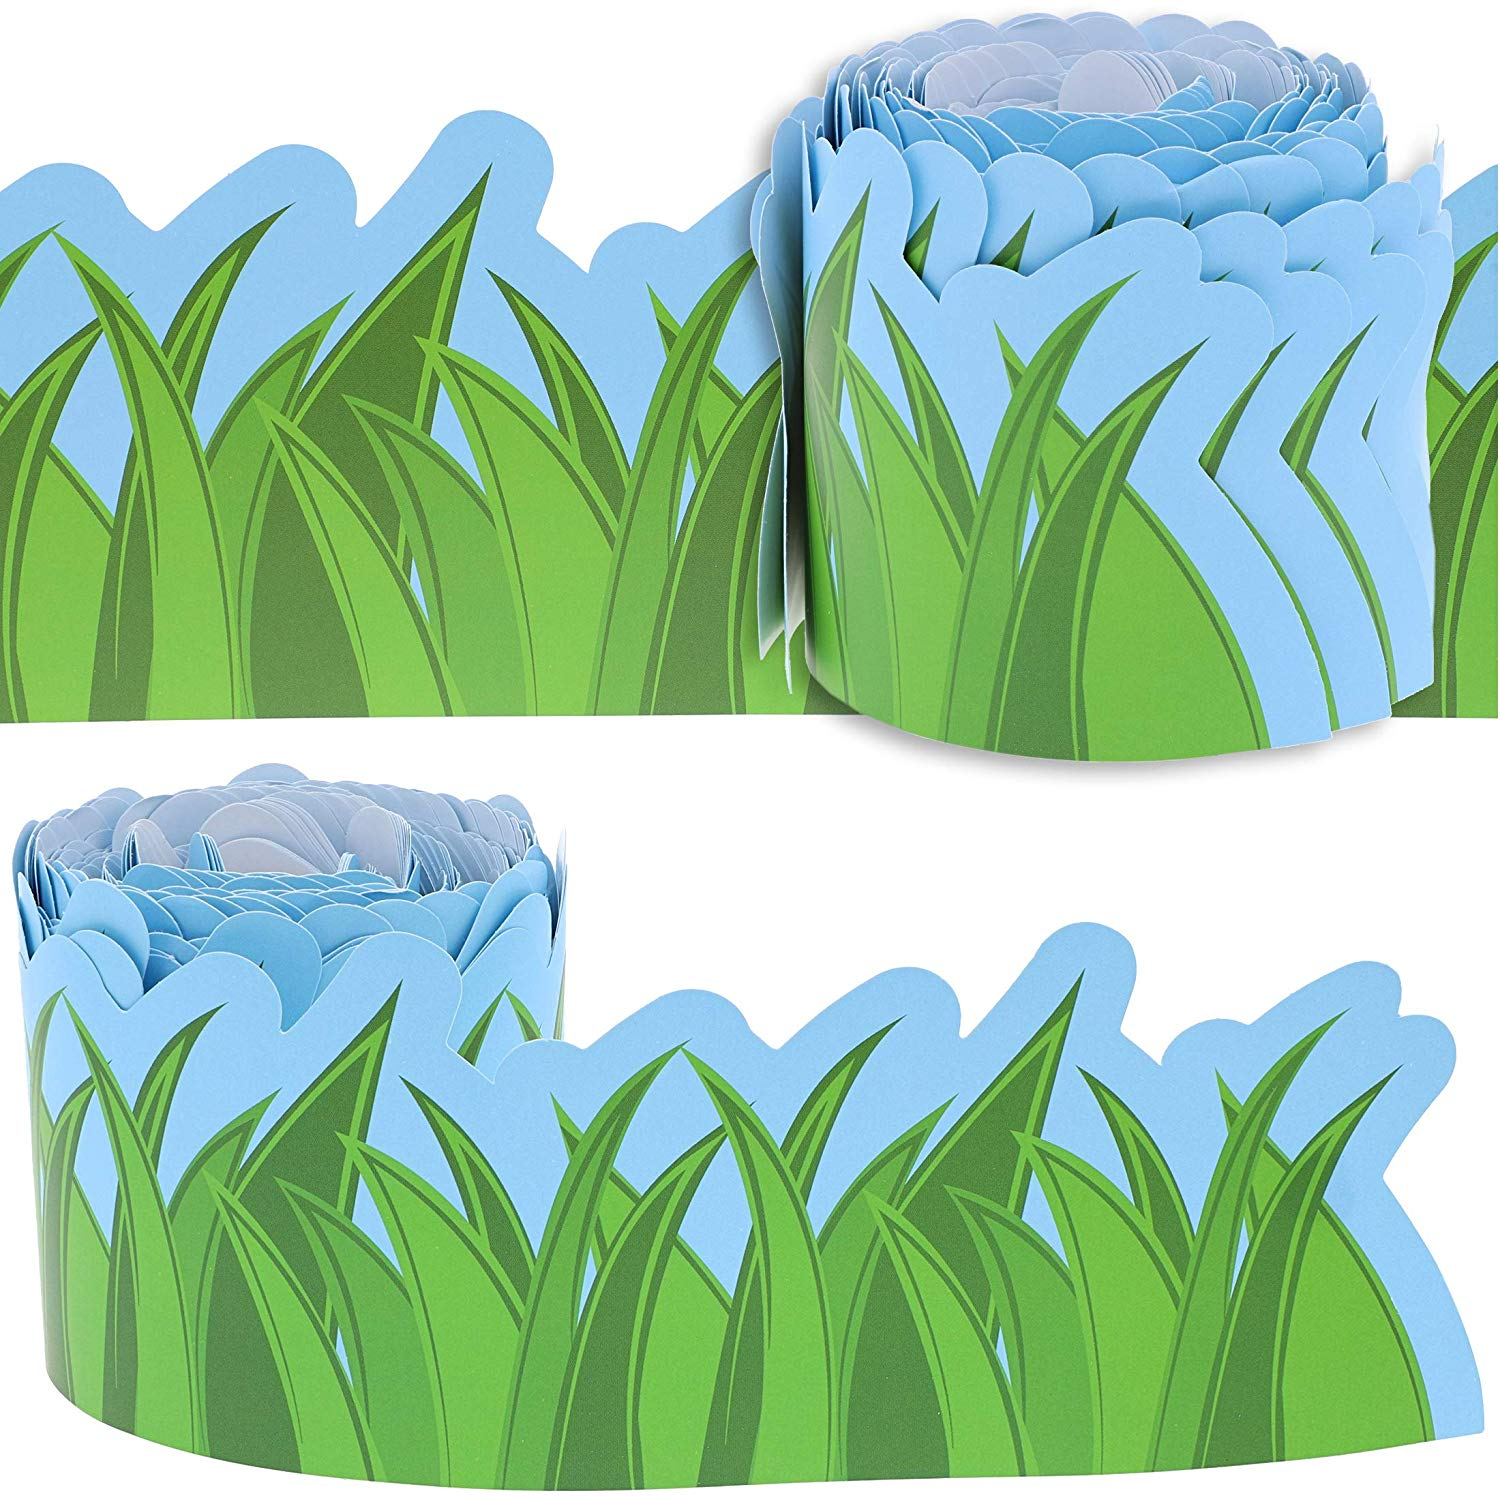 Juvale pack bulletin board. Outdoors clipart strip grass